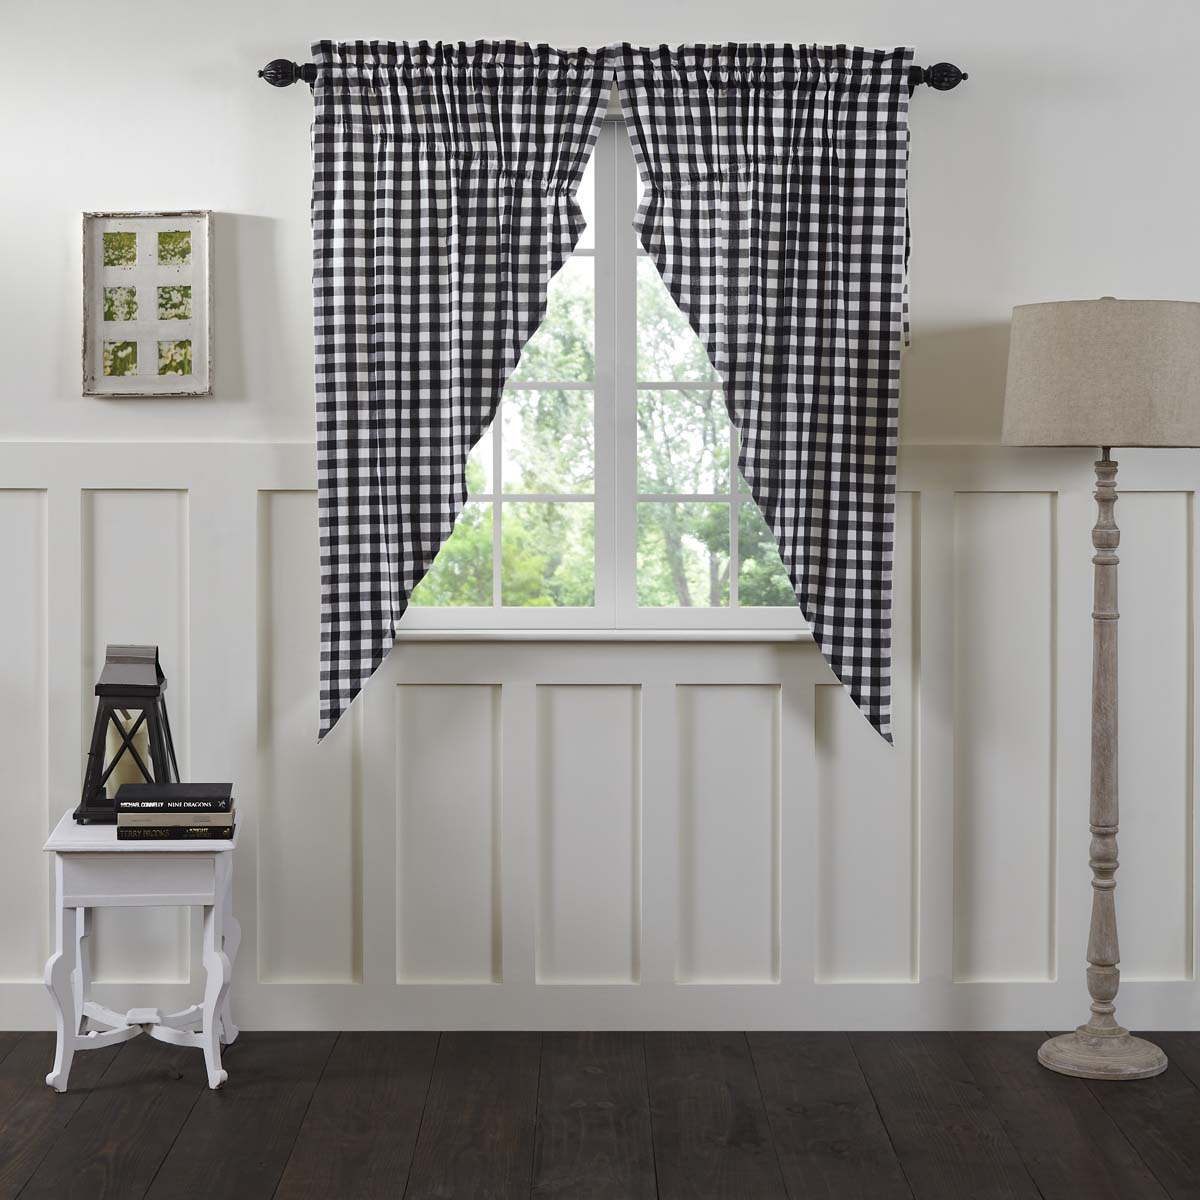 Valance 60 inch Buffalo Check Black White Country Curtain VHC Brands Annie